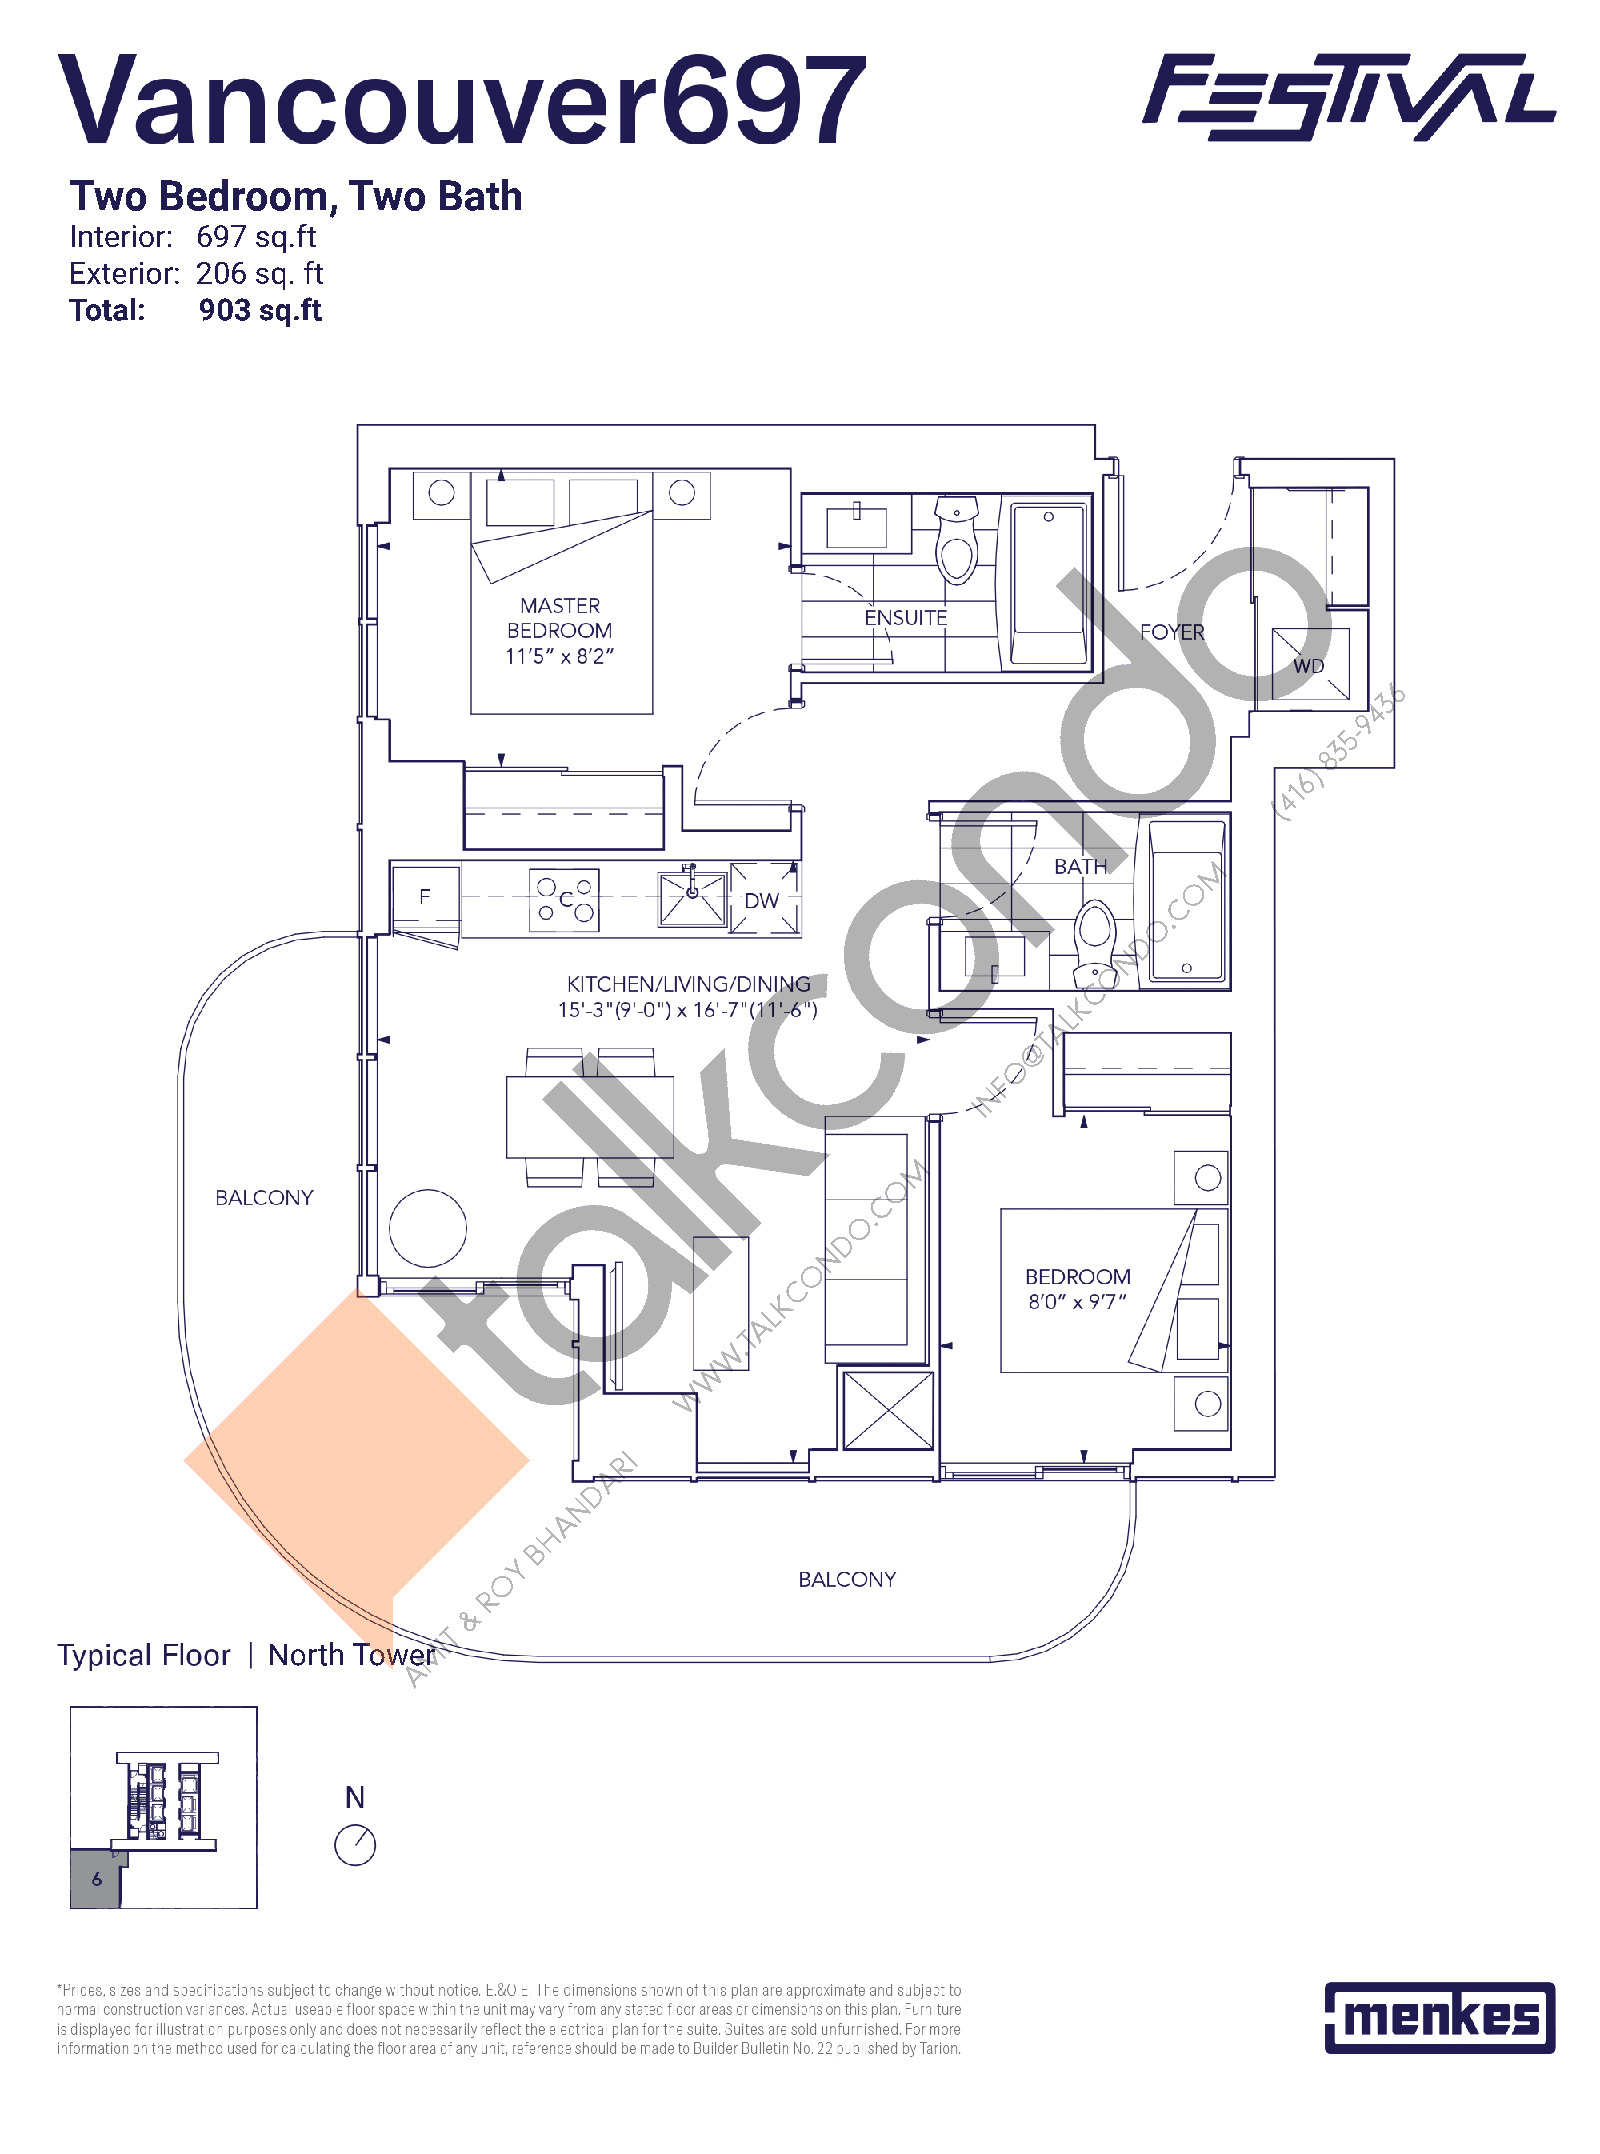 Vancouver 697 Floor Plan at Festival Condos North Tower - 697 sq.ft